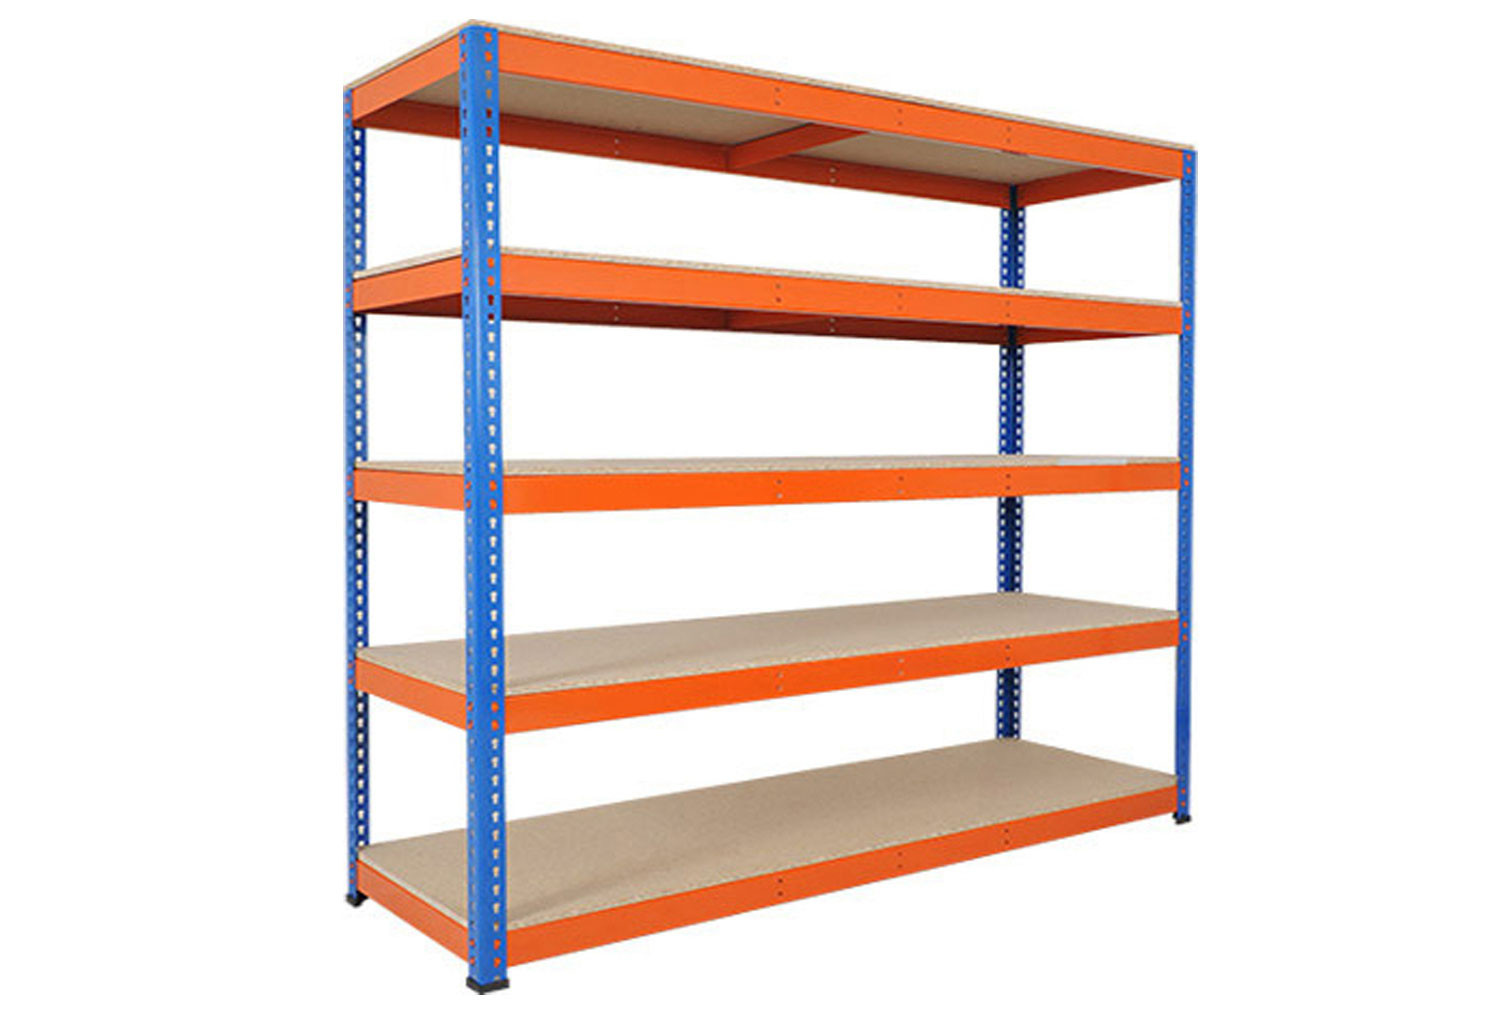 Rapid 1 Heavy Duty Shelving With 5 Chipboard Shelves 2134wx2440h (Blue/Orange)